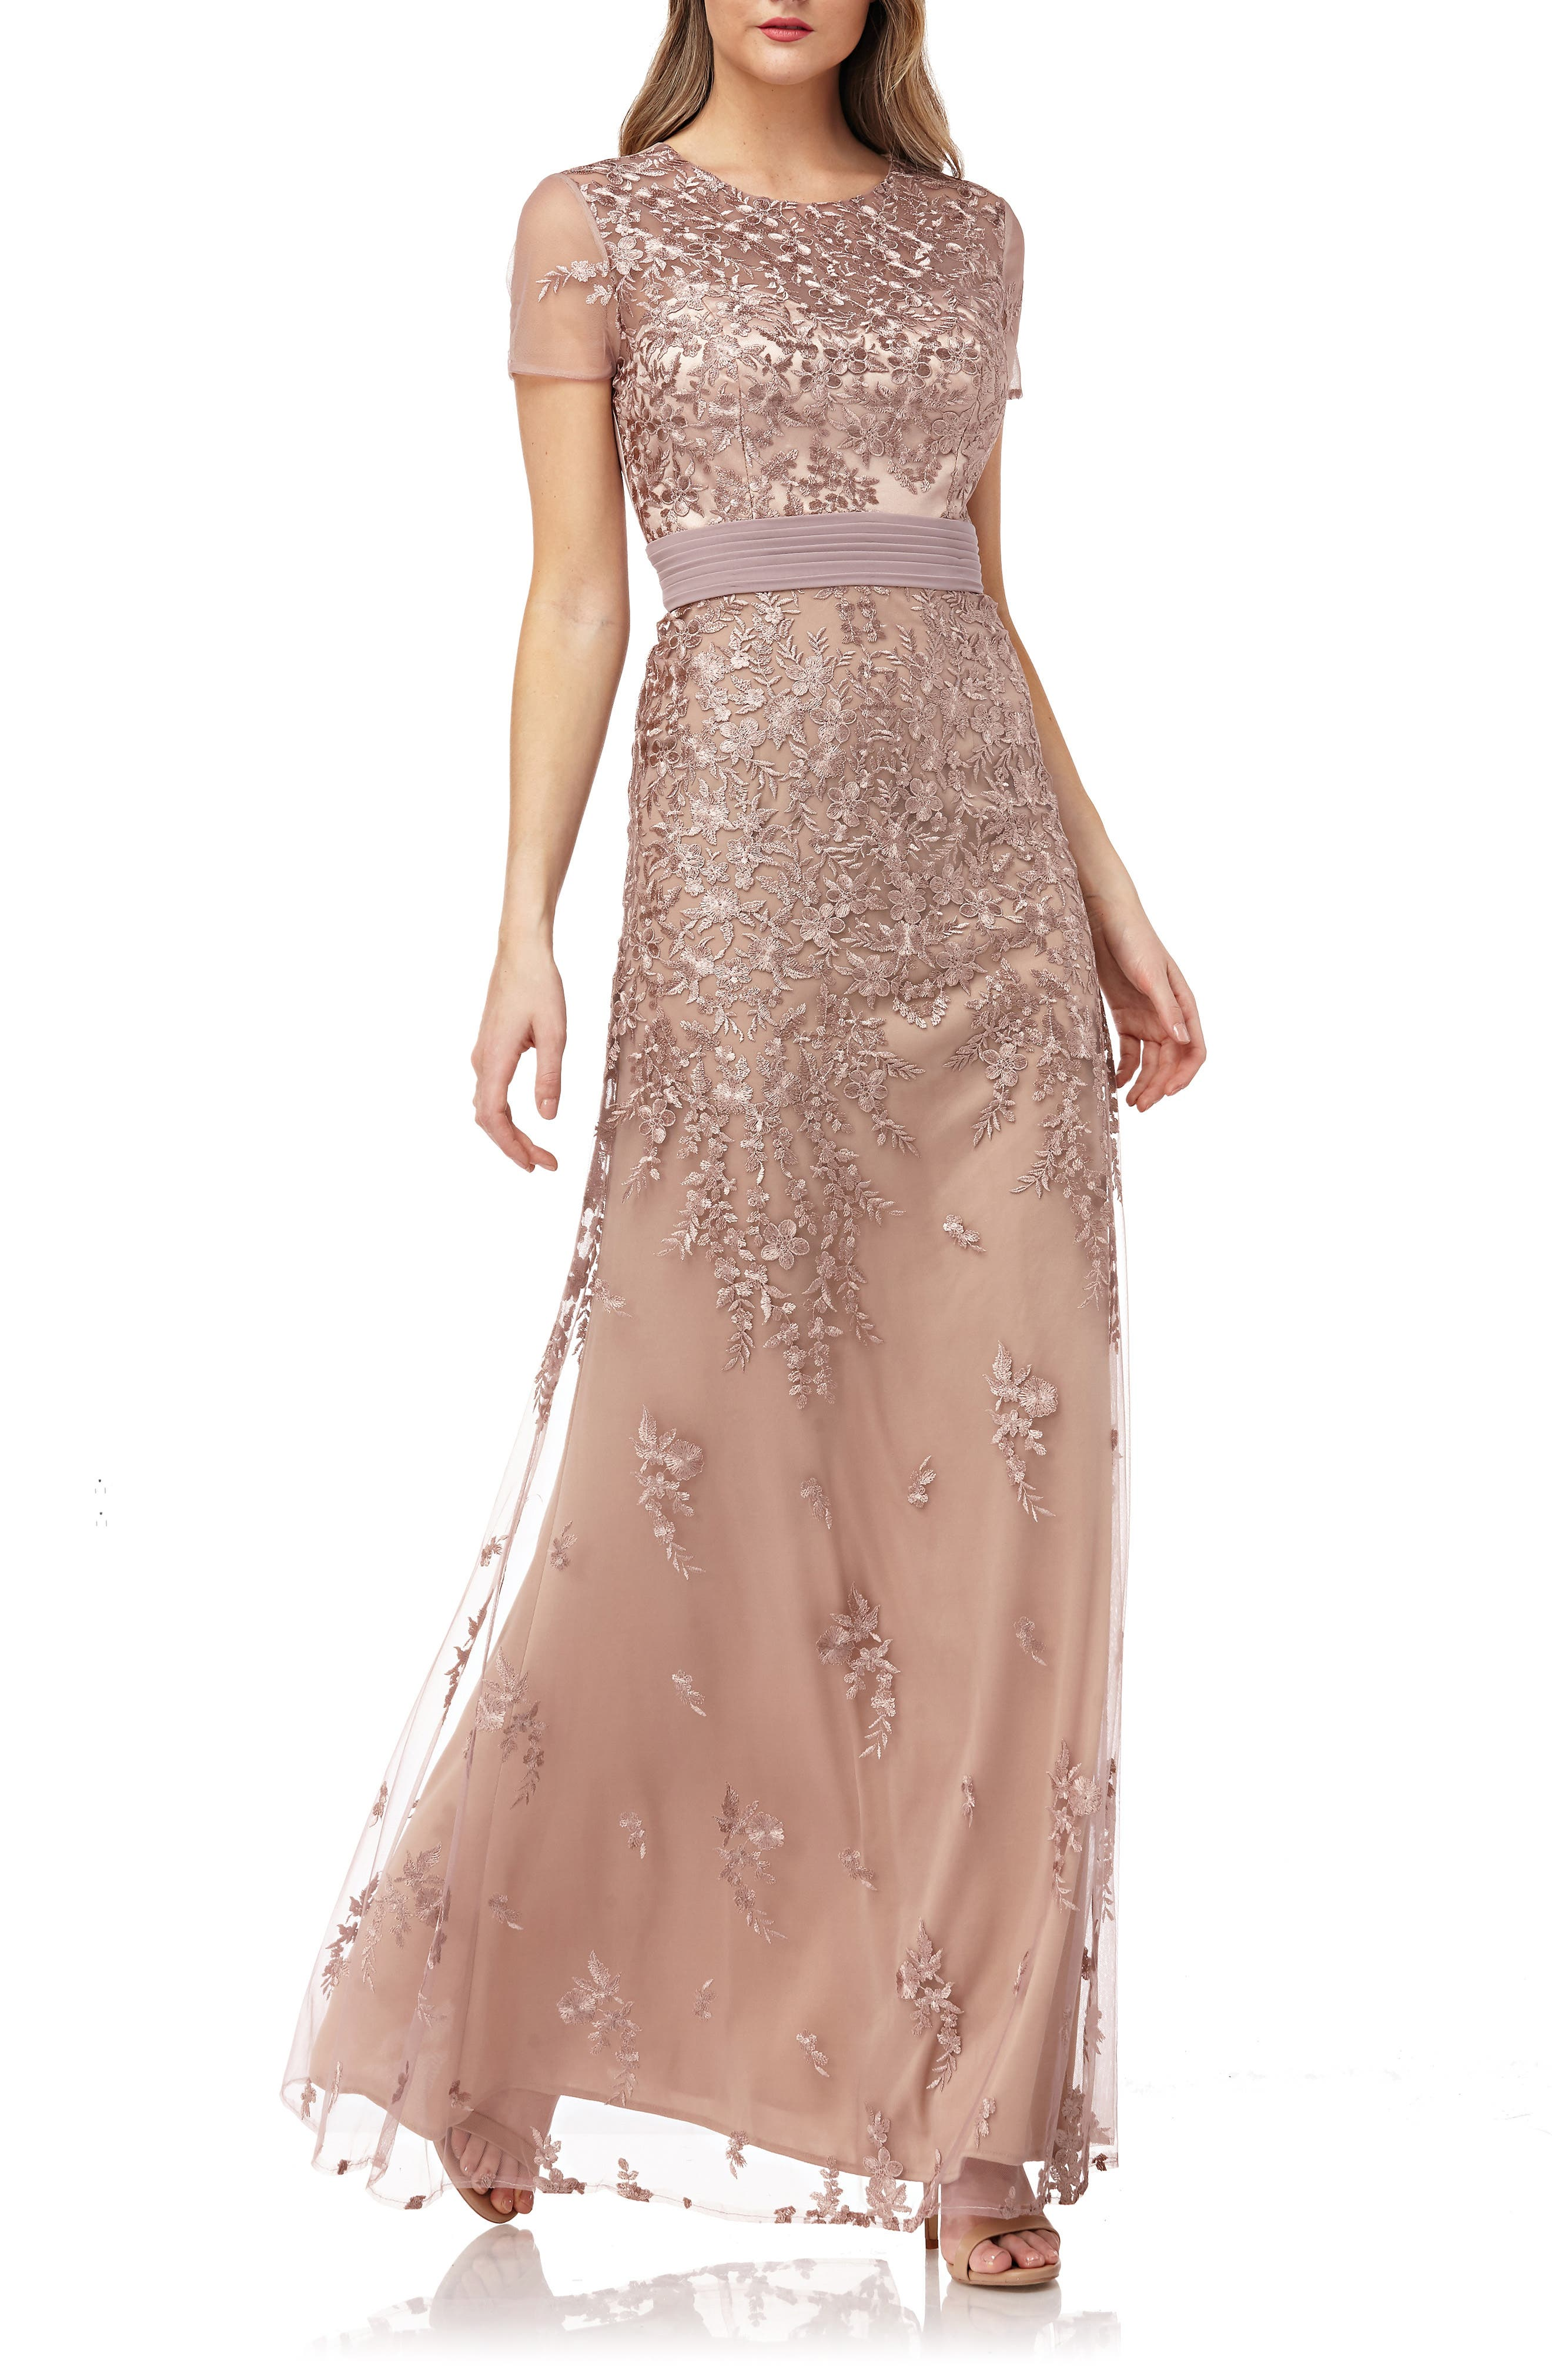 JS COLLECTIONS, Floral Embroidered Evening Dress, Main thumbnail 1, color, MAPLE SUGAR